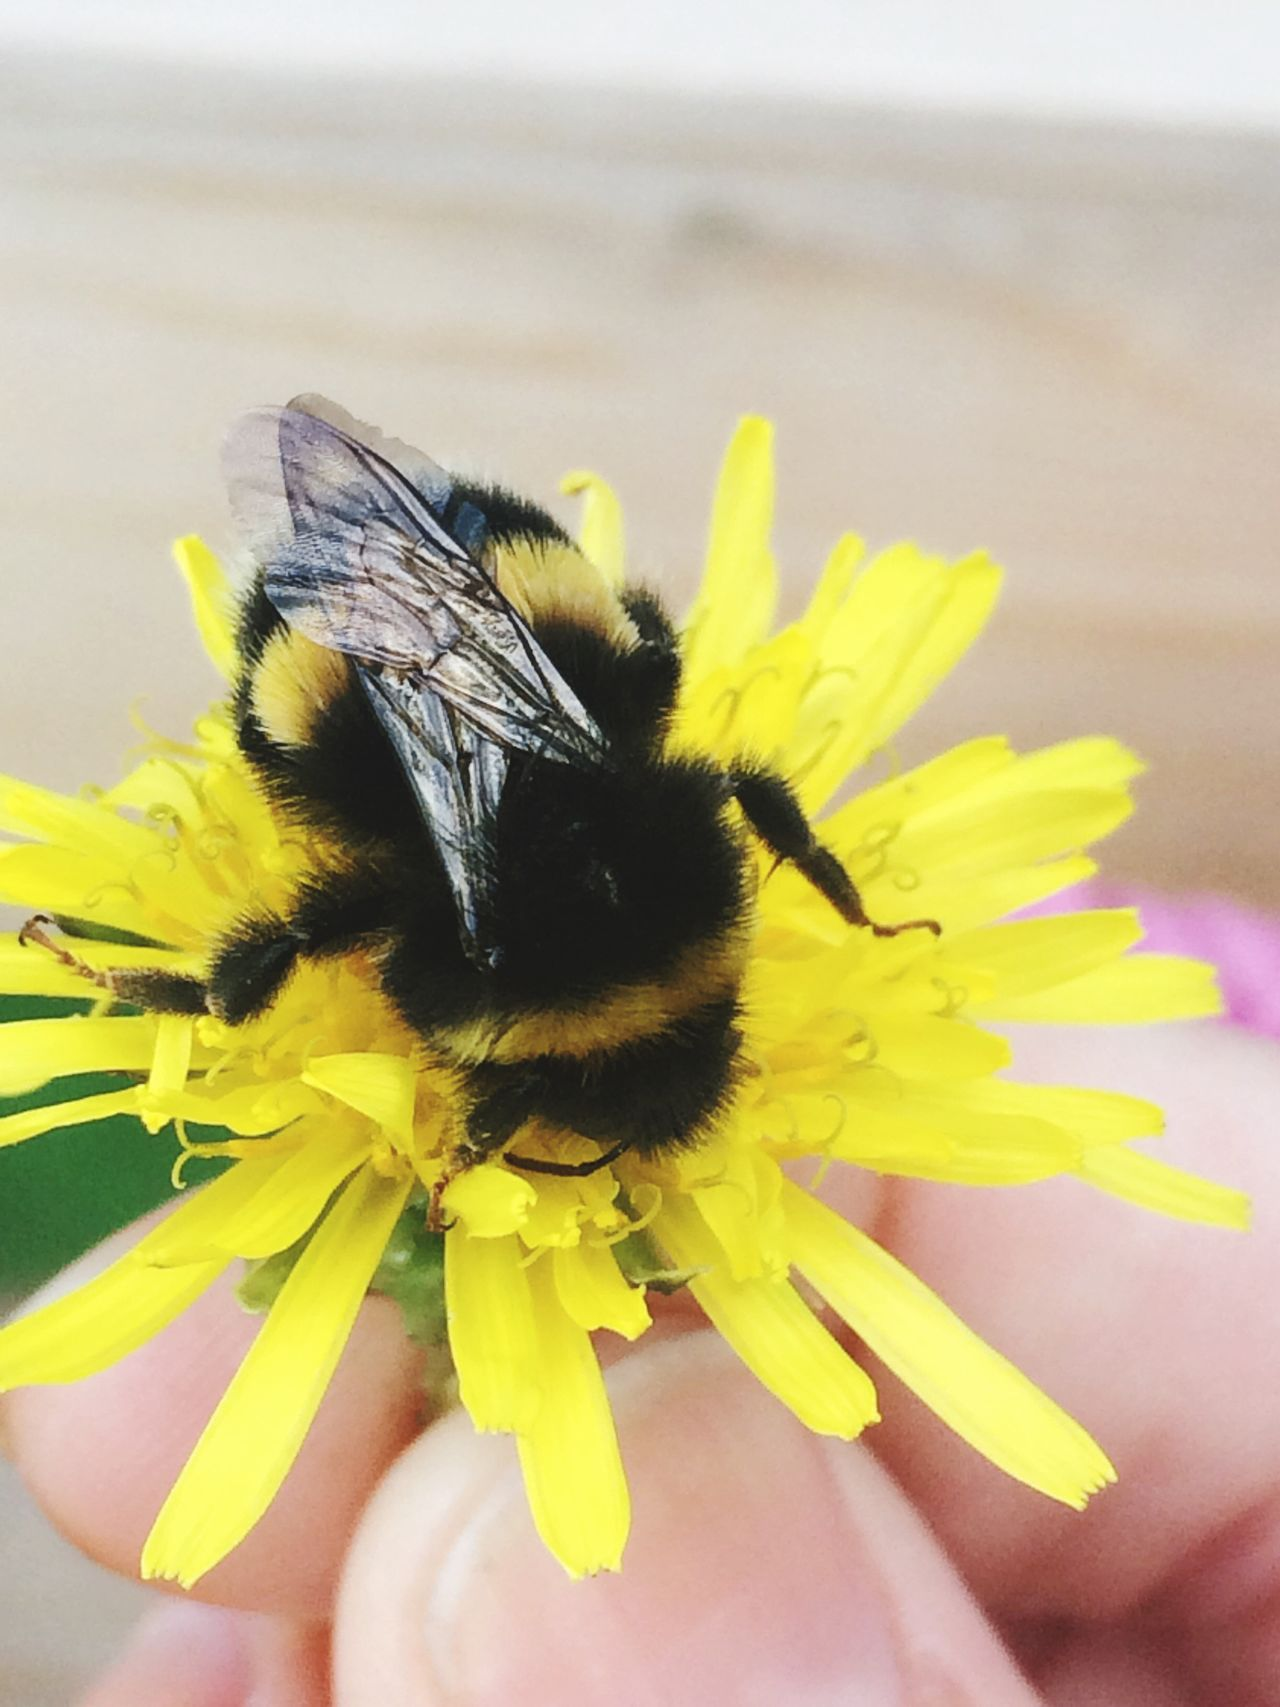 Helping A Friend Love Bees Save The Bees Pollinators Embrace Nature Friends Bee Tired Bee Wildflowers Dandelion